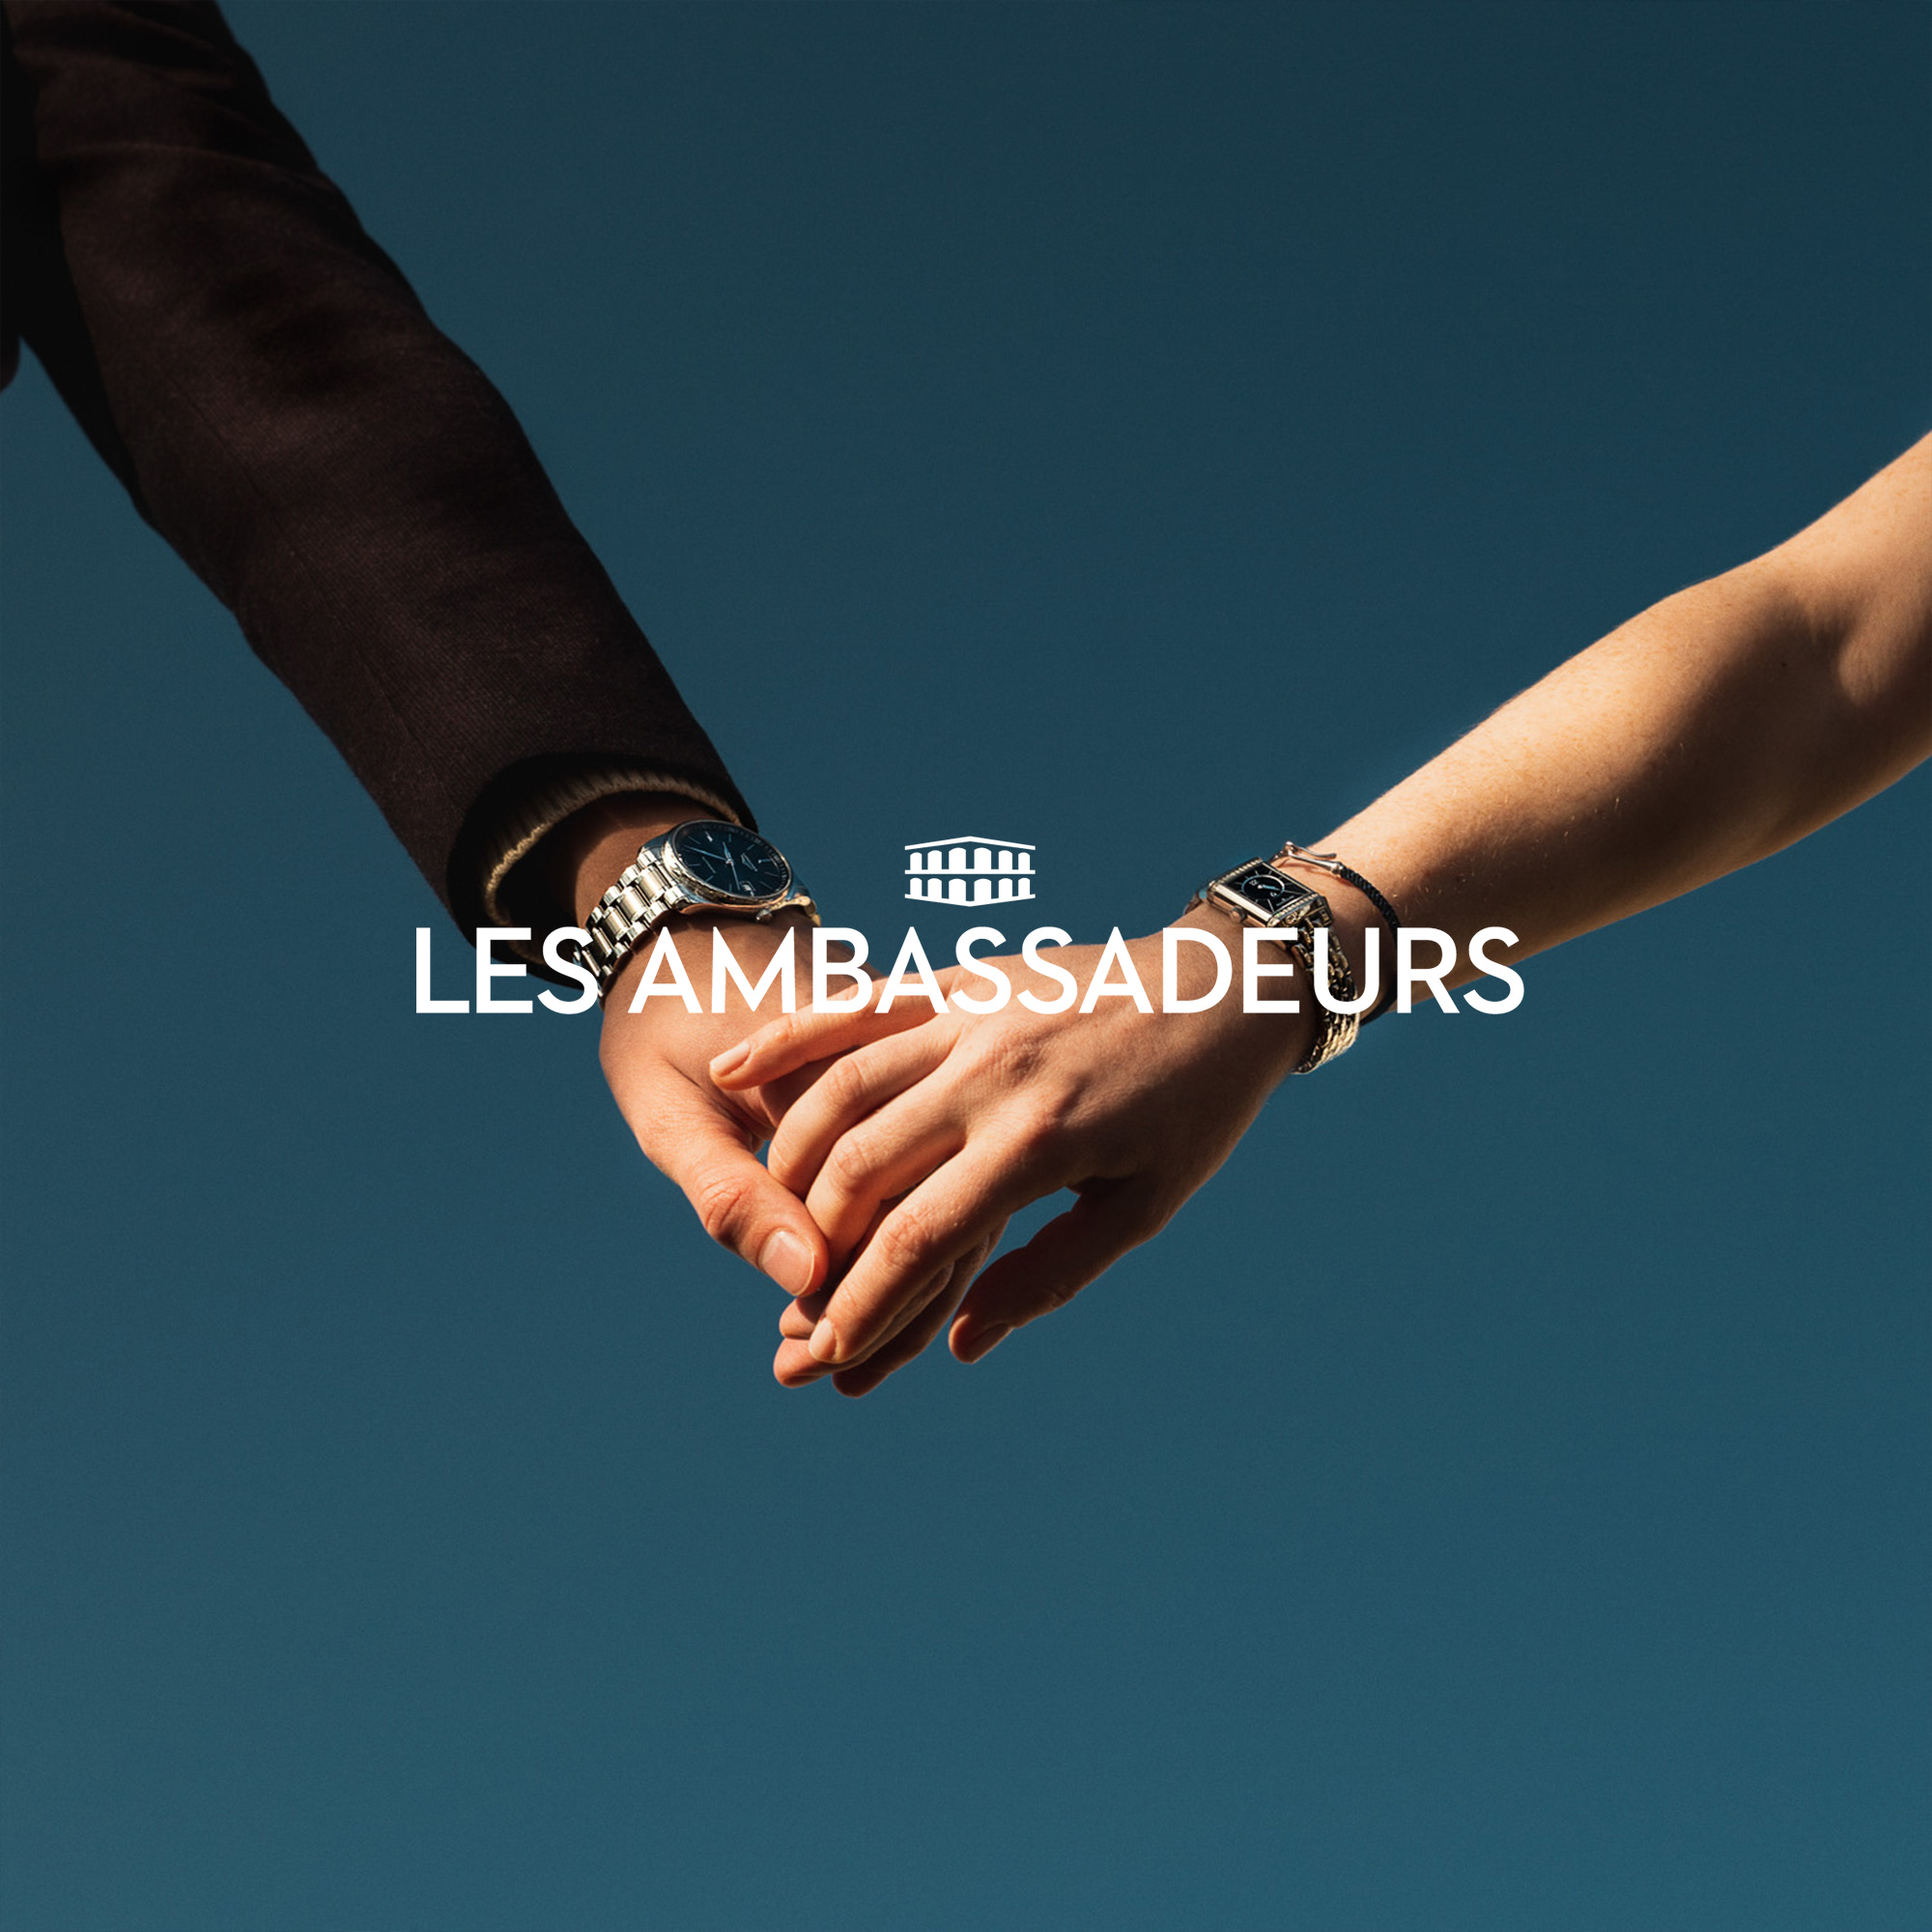 Les Ambassadeurs - Valentine's Day Campaign - January 2019